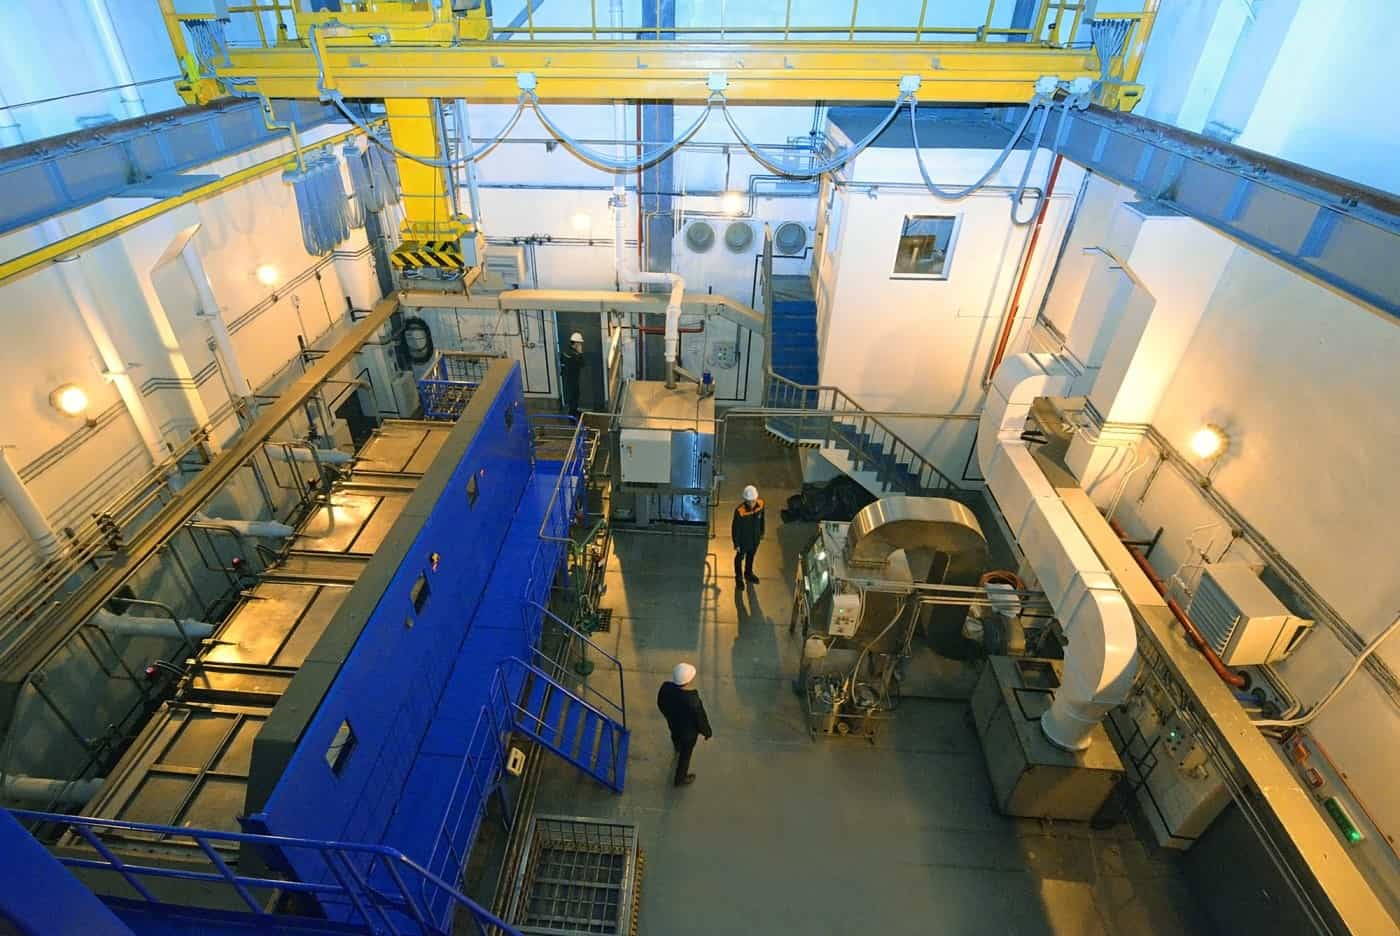 RNPP commissioned a radioactive waste processing complex